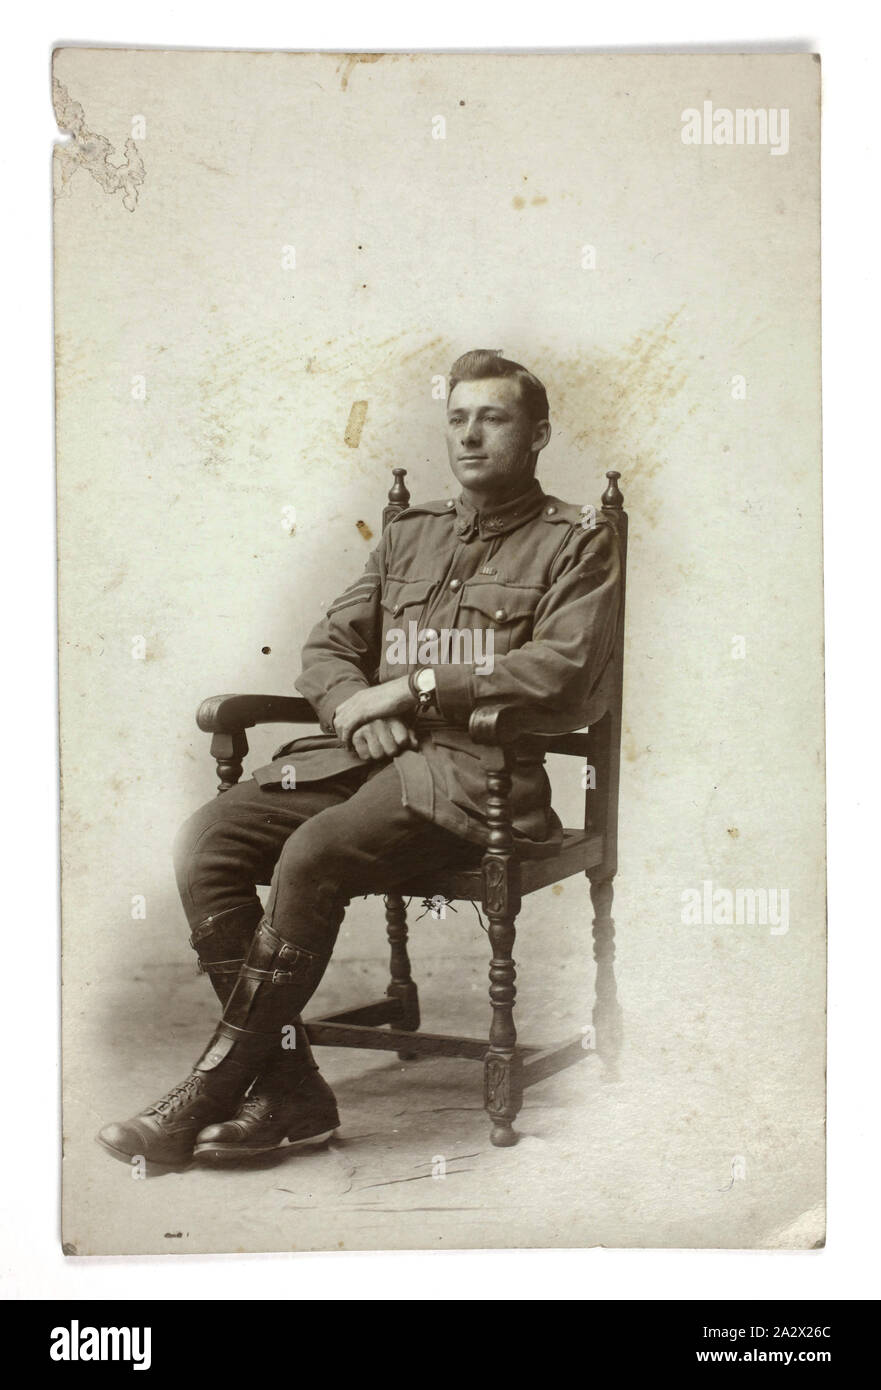 Photograph - Australian Serviceman Sergeant Lydster, AIF, World War I, 1917, Portrait of Tom Robinson Lydster, 4th Machine Gun Battalion, AIF, service no. 3060, taken in 1917, during his service in World War I. Lydster was assigned to the 14 Infantry Battalion - 5 to 12 Reinforcements, service number 3060. He served in the 4th Machine Gun Company. He was awarded the Military Medal and the Bar to Military Medal Stock Photo